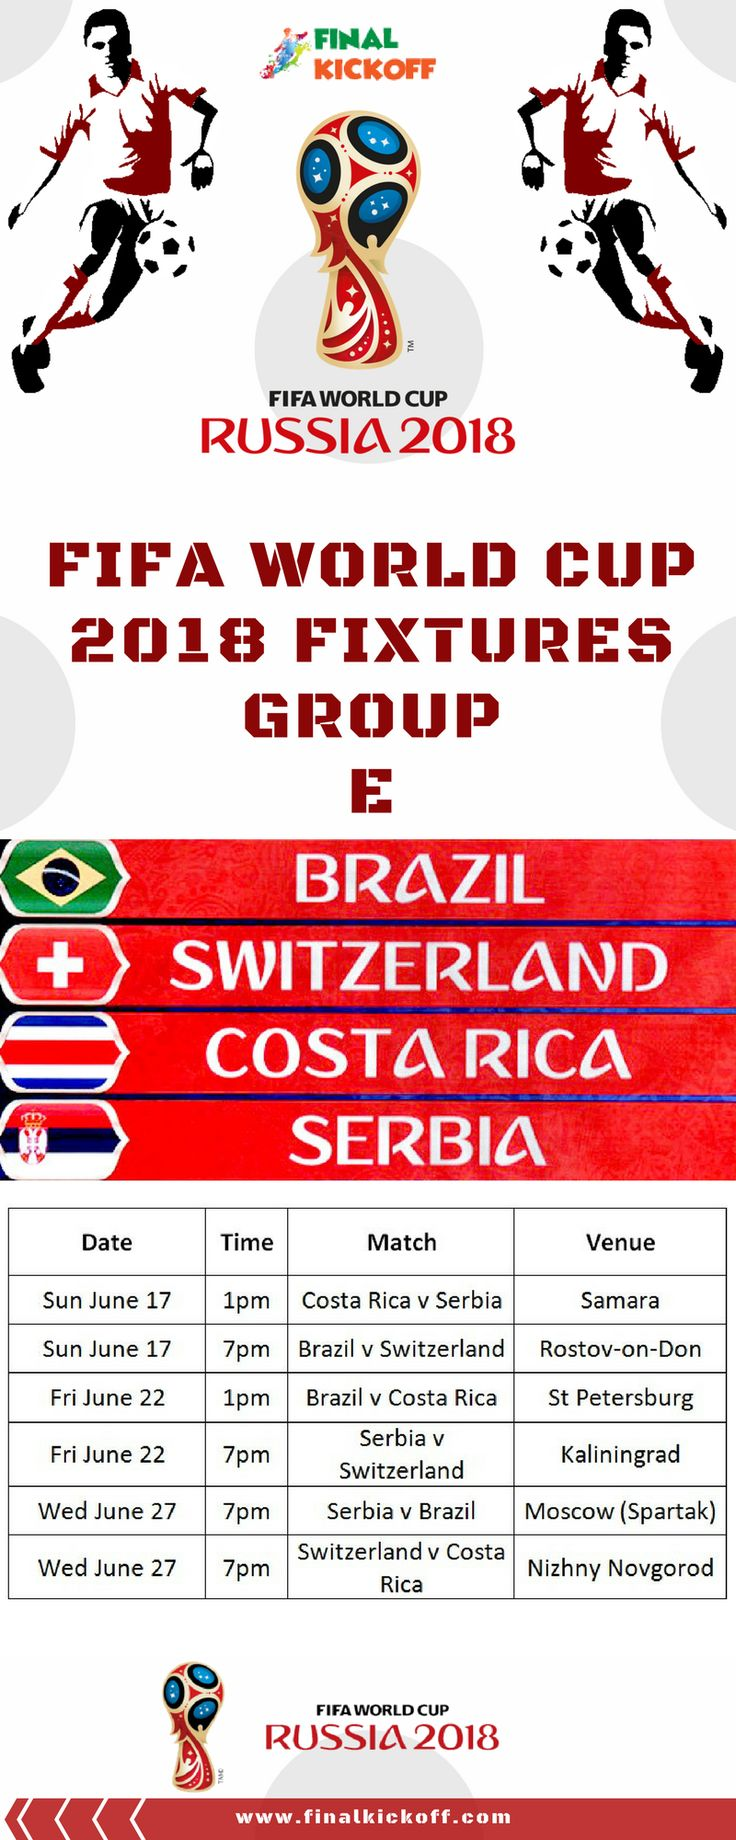 FIFA World Cup 2018 Match Schedule Group E